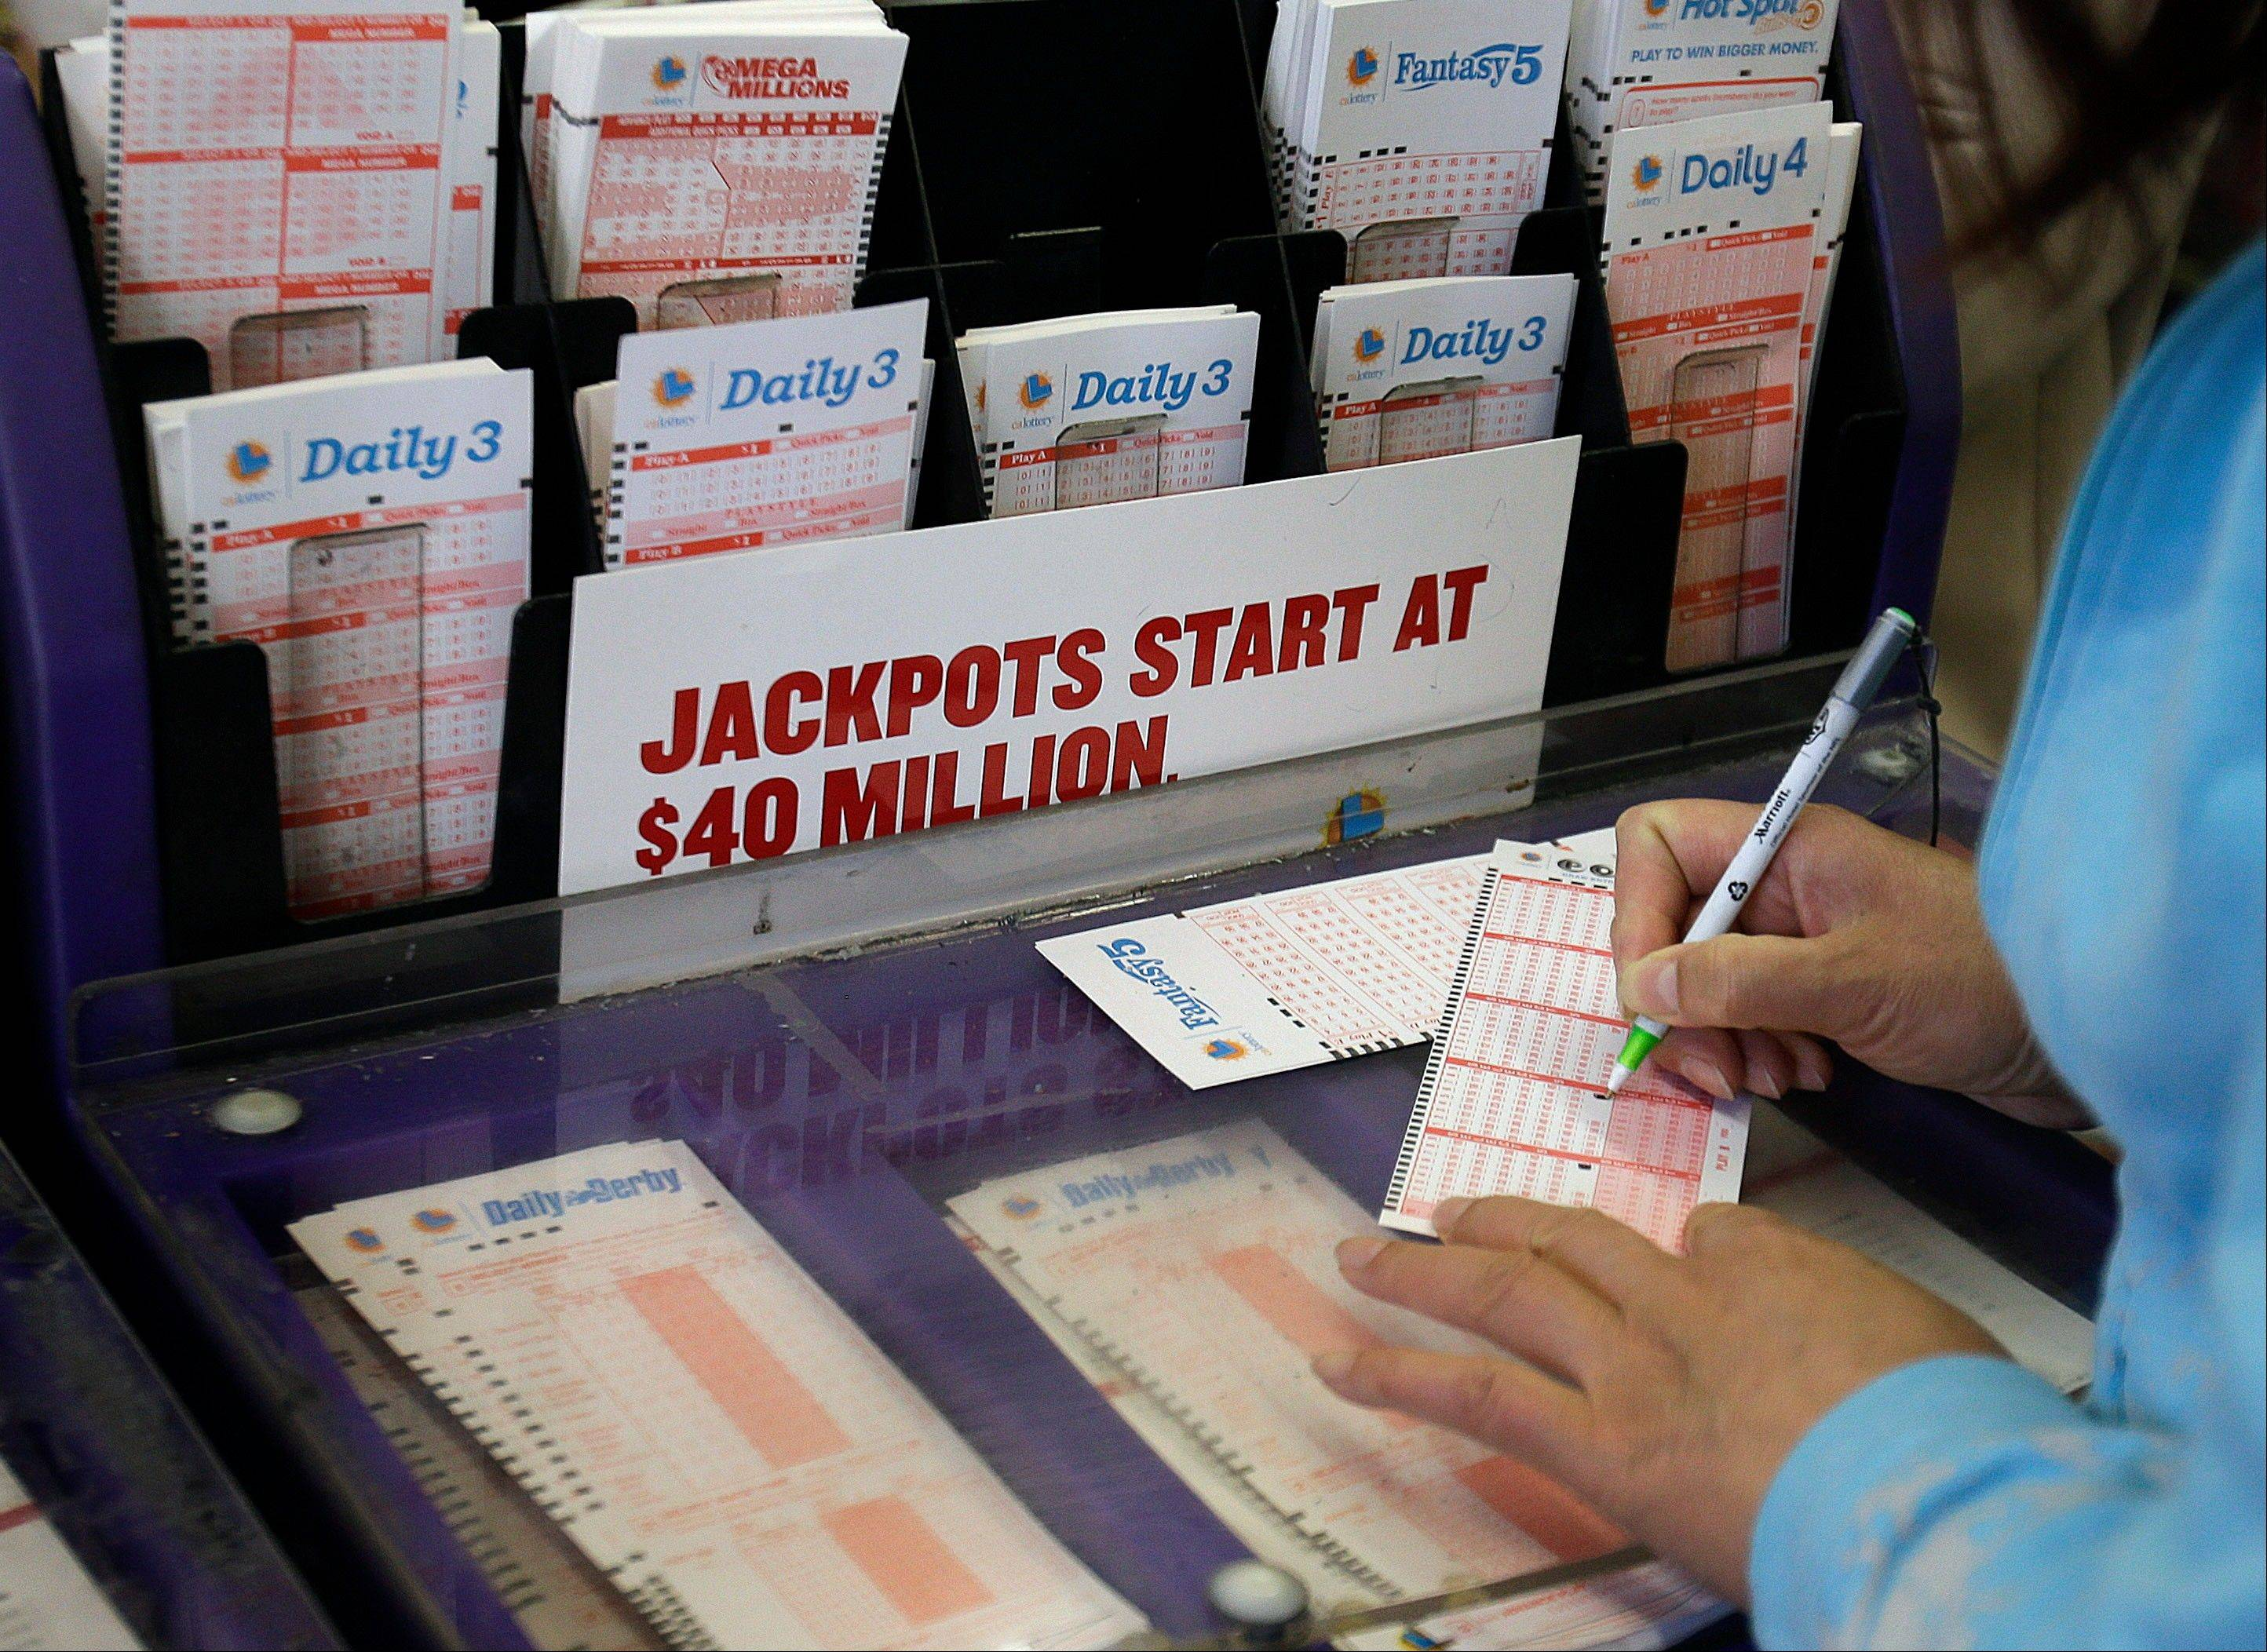 A woman prepares to choose her numbers on a lottery ticket Saturday in Oakland, Calif. The record Powerball jackpot has climbed to $600 million, and lottery officials say the winning ticket was sold in Florida.